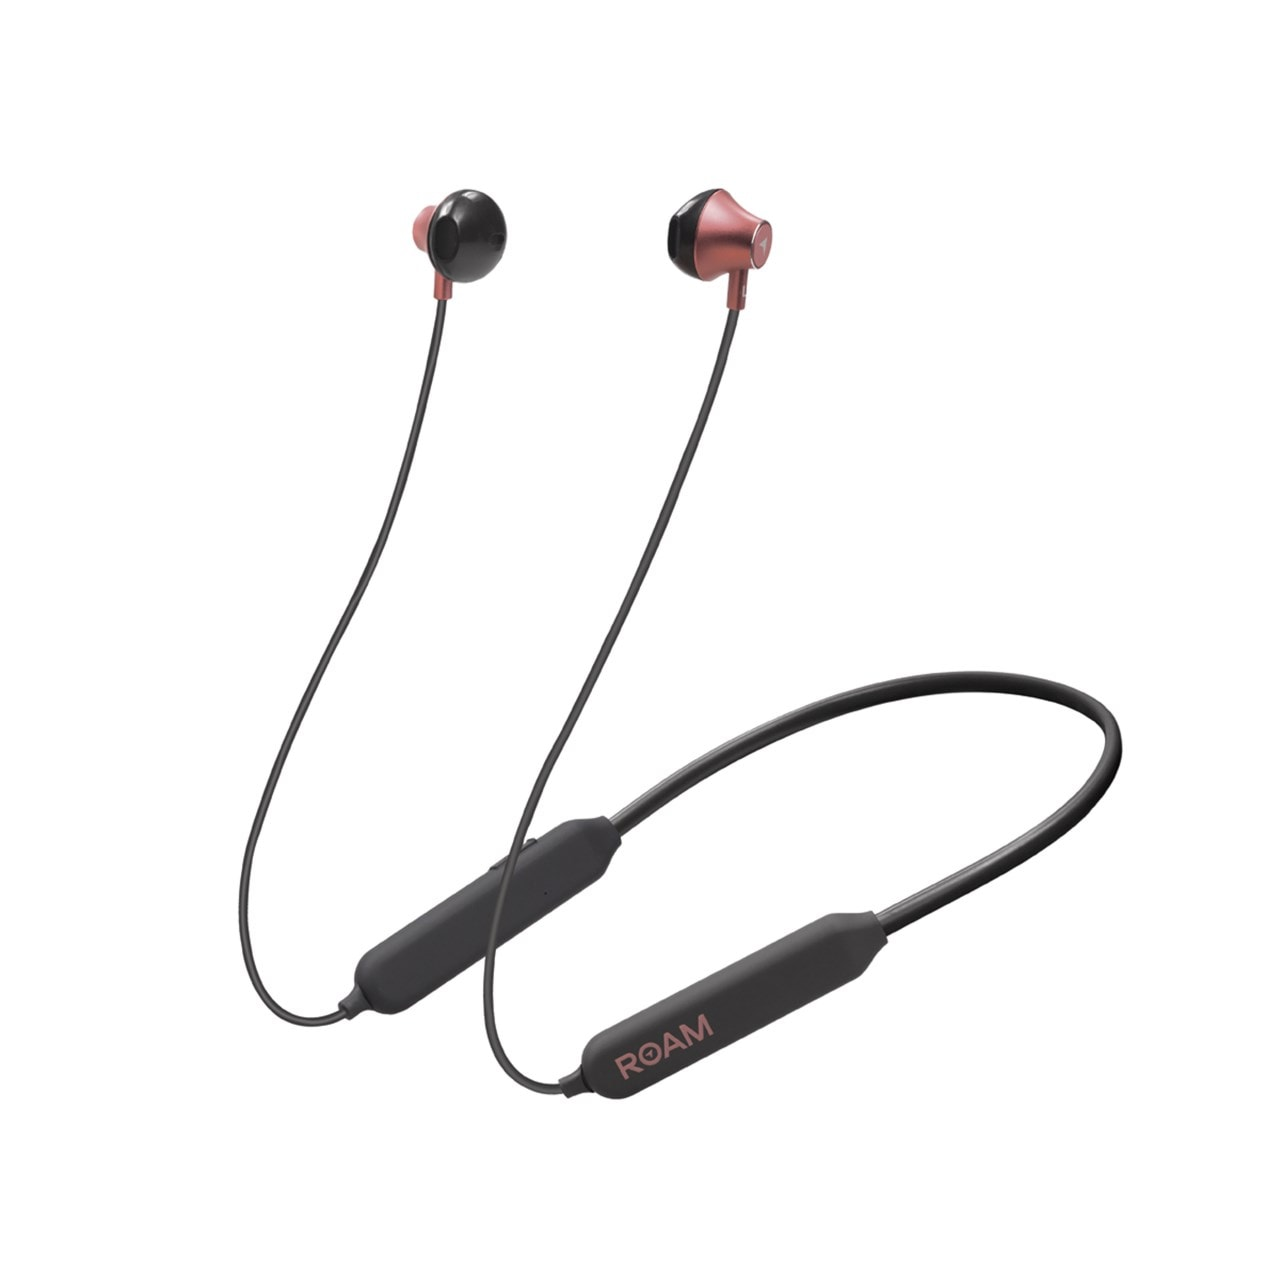 Roam Voyager Rose Gold Bluetooth Earphones - 1